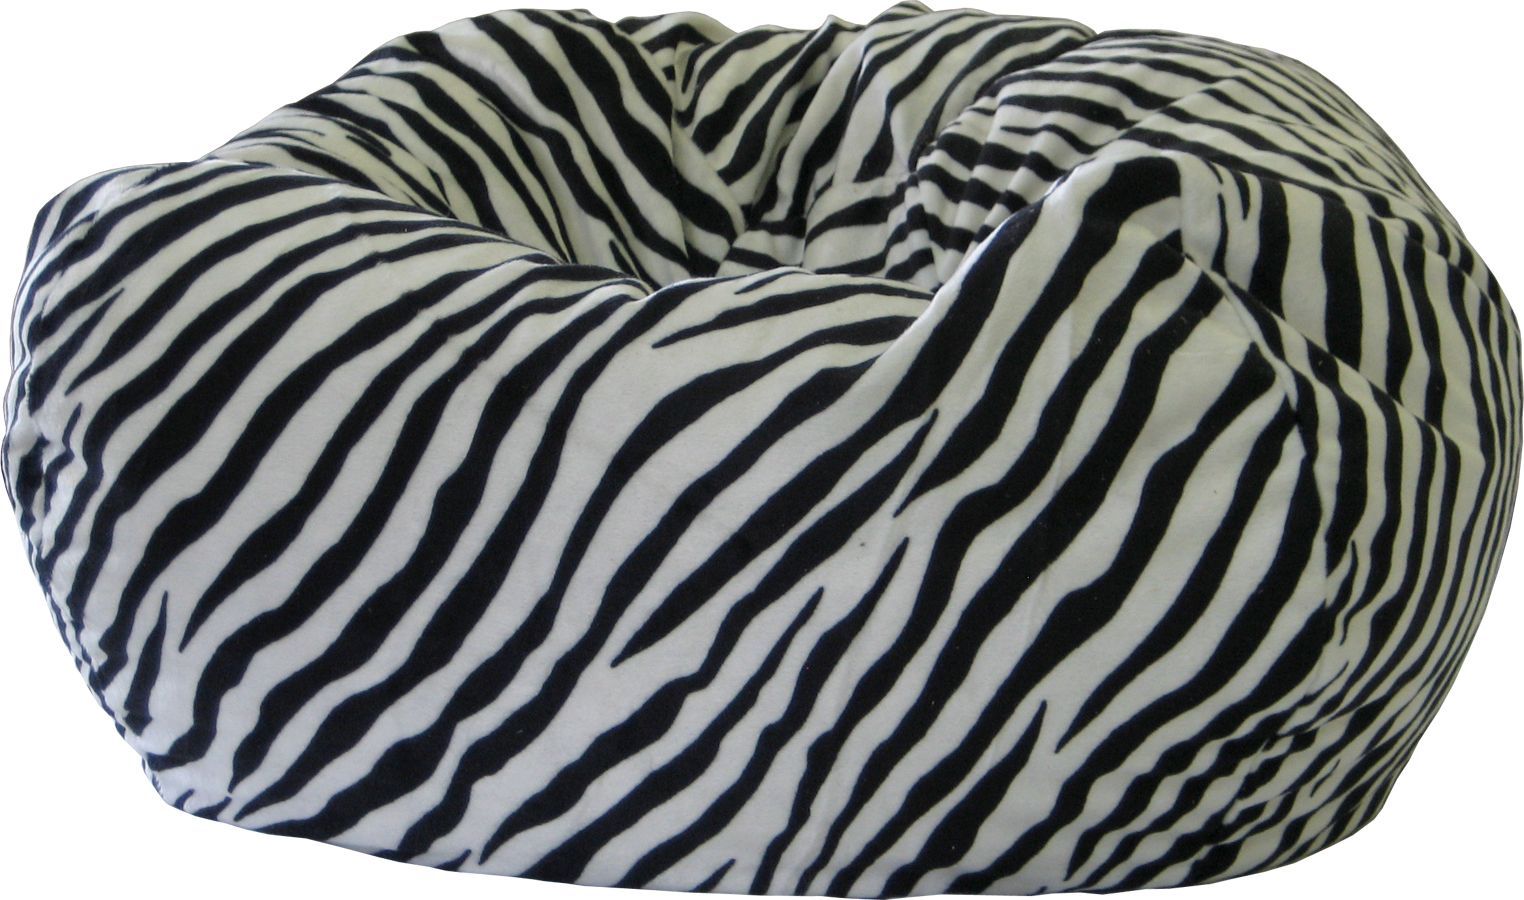 cheetah print bean bag chair poly banquet covers xxl micro fiber suede animal bags